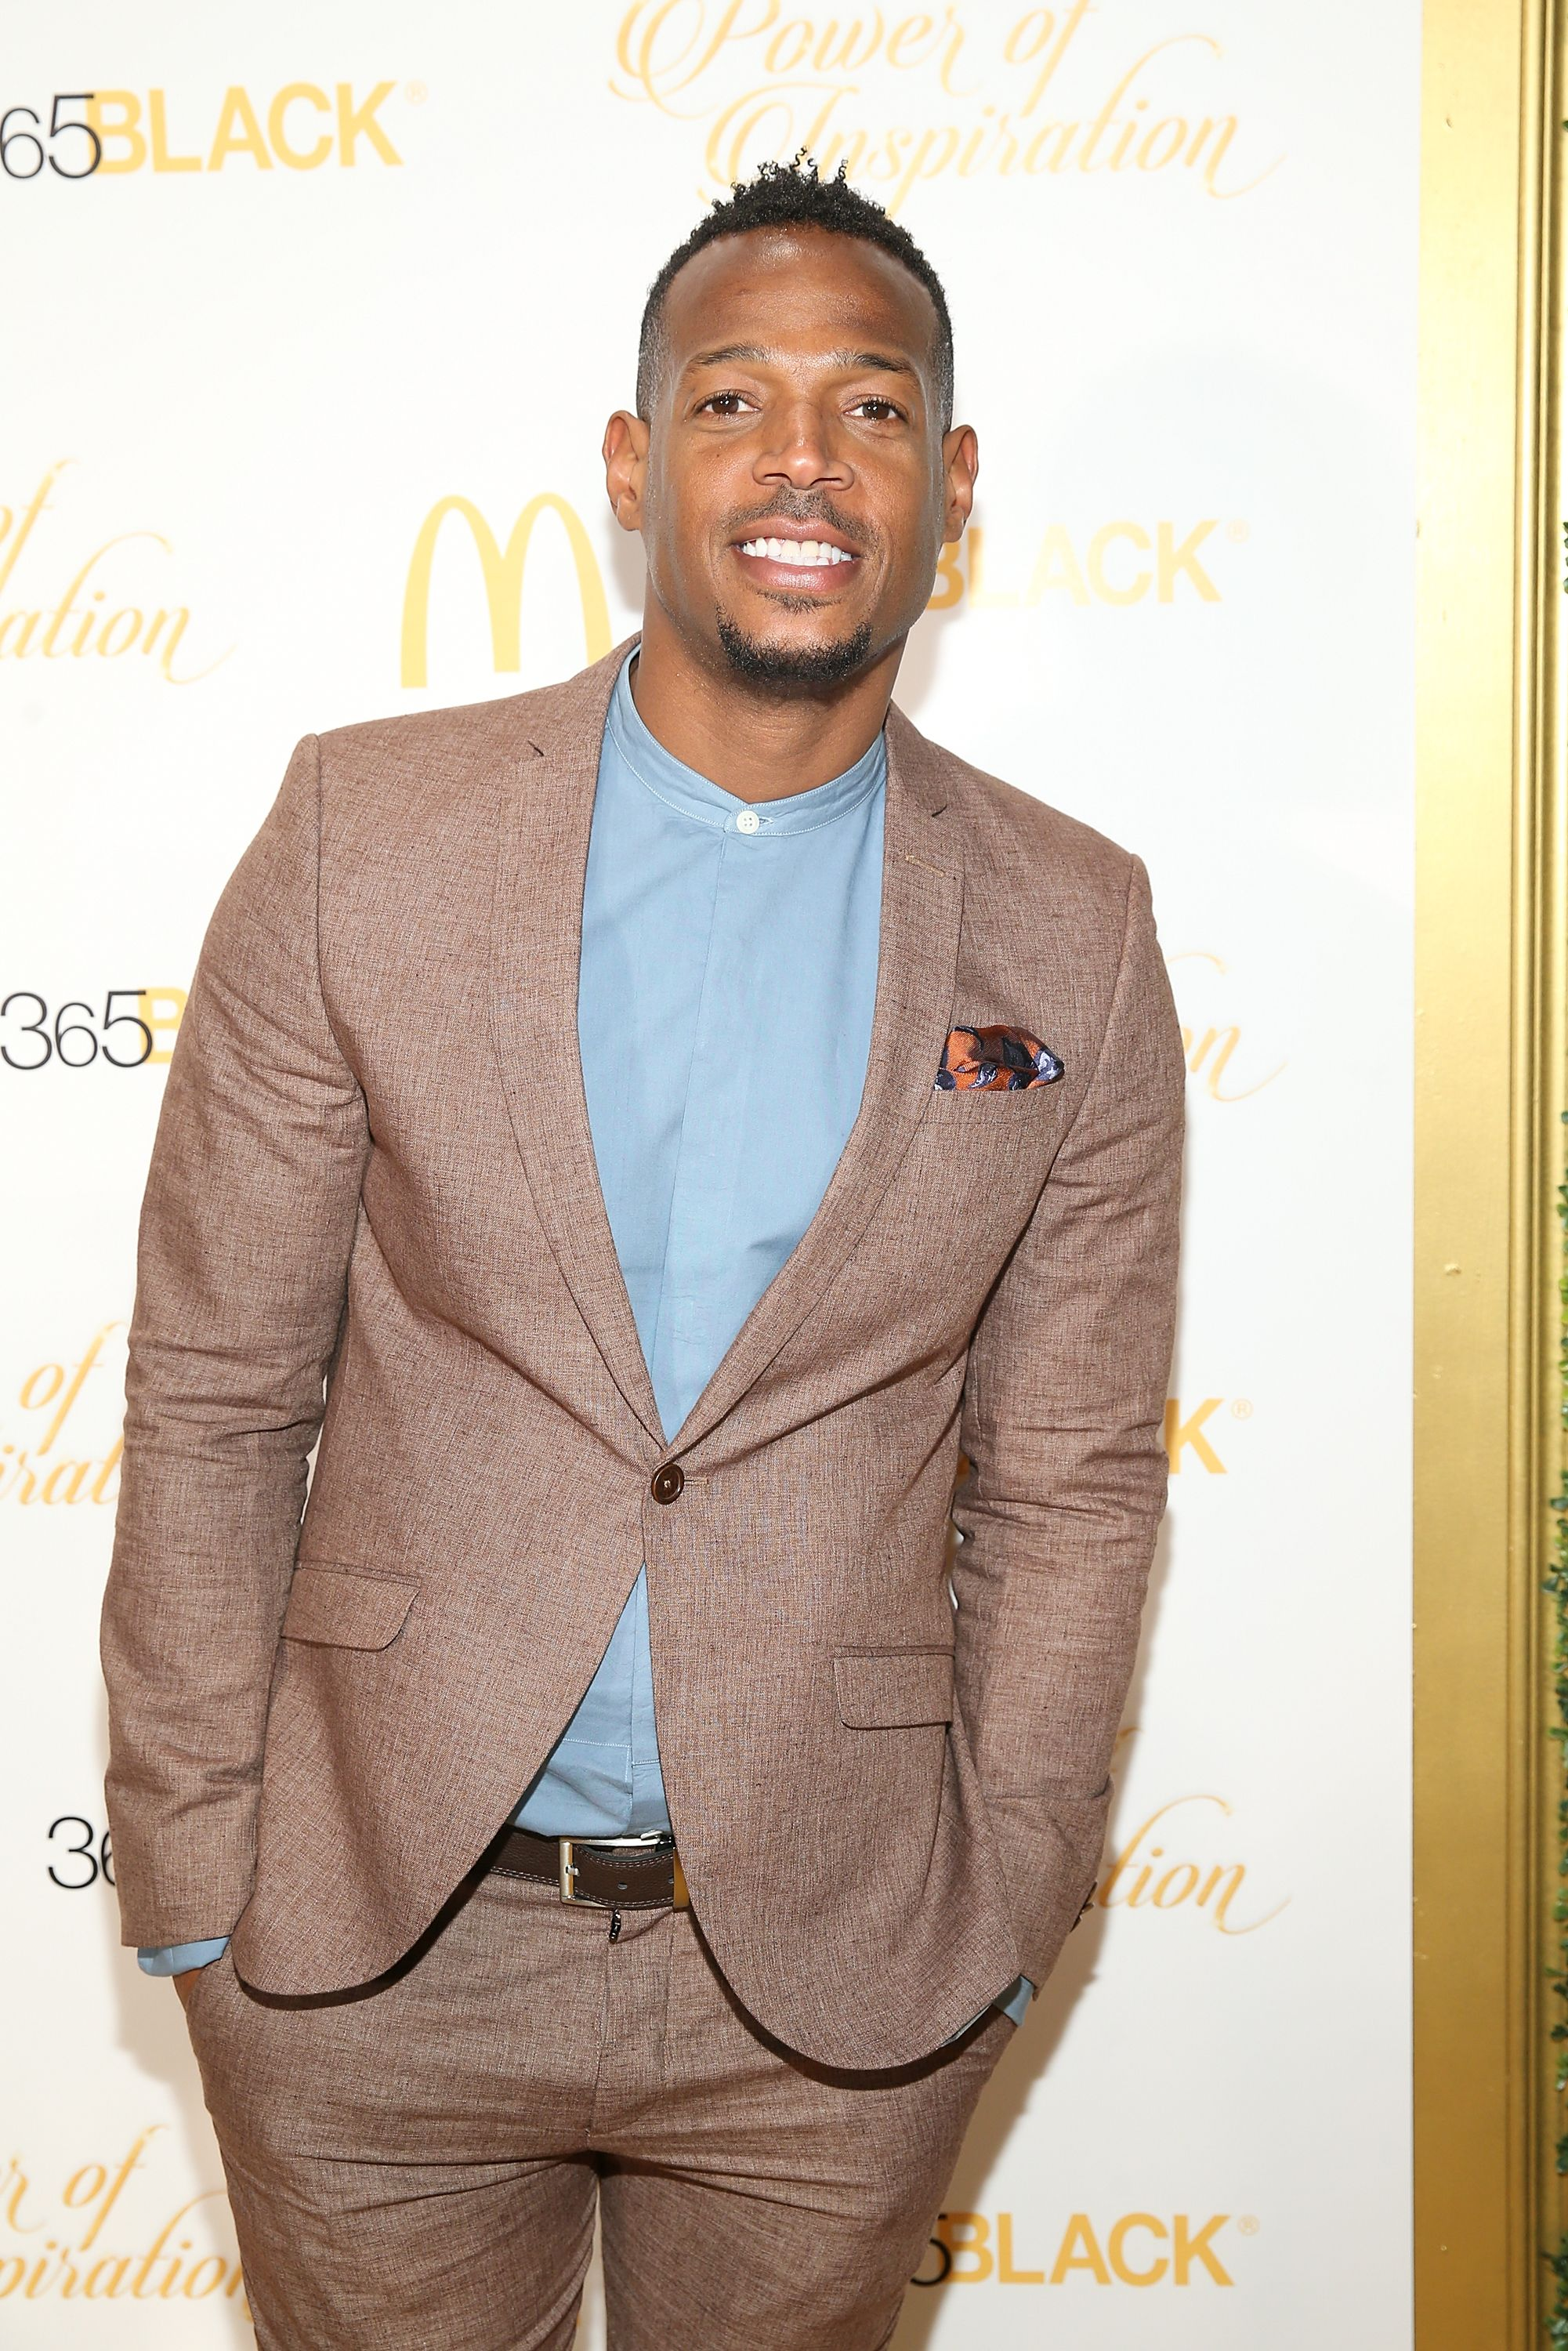 Marlon Wayans attends the 14th Annual McDonald's 365Black Awards at The Ritz-Carlton New Orleans on July 2, 2017 in New Orleans, Louisiana | Photo: Getty Images